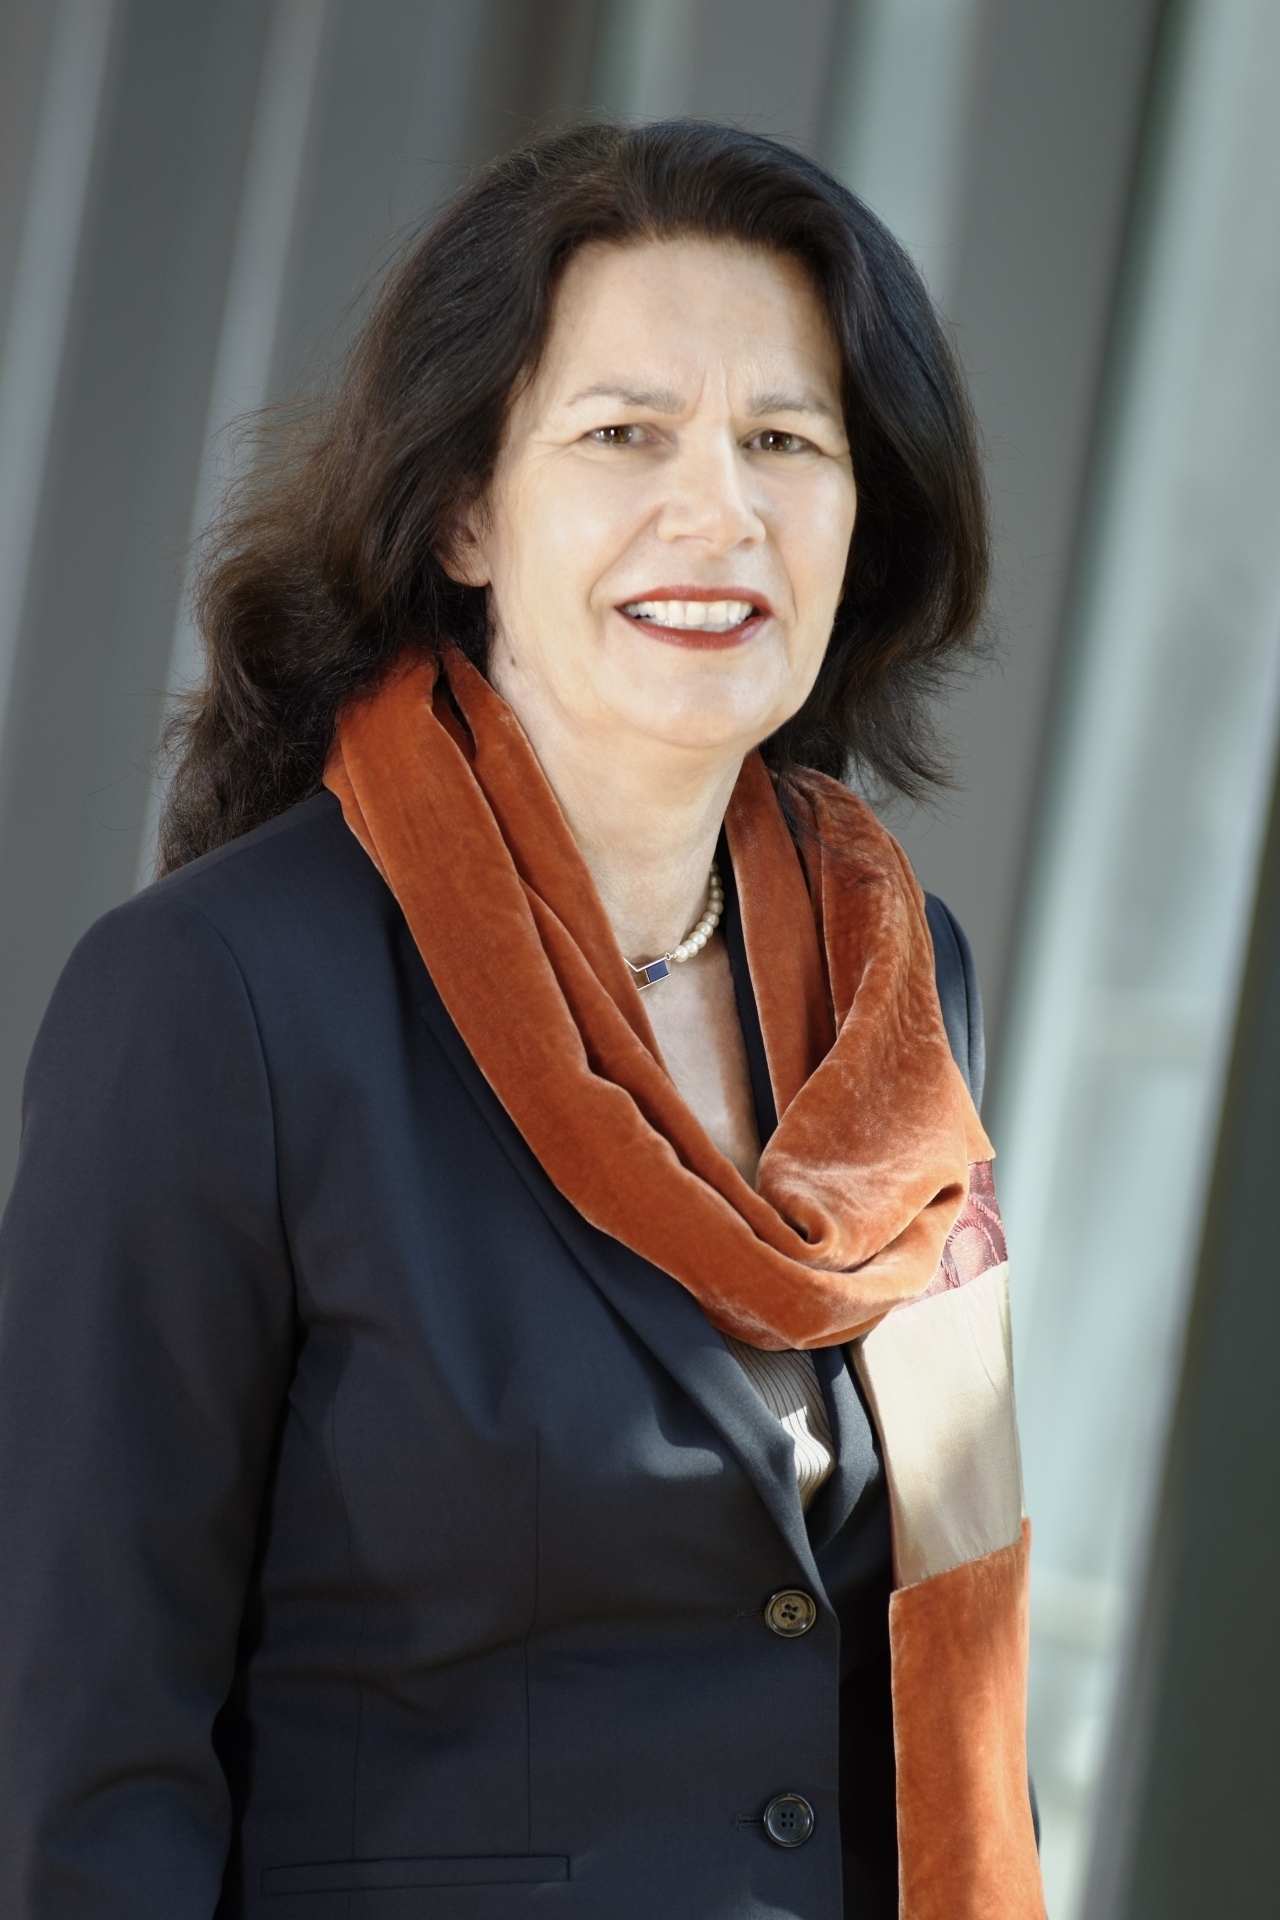 Doris Klee, Vice-Rector for Human Resources Management and Development at